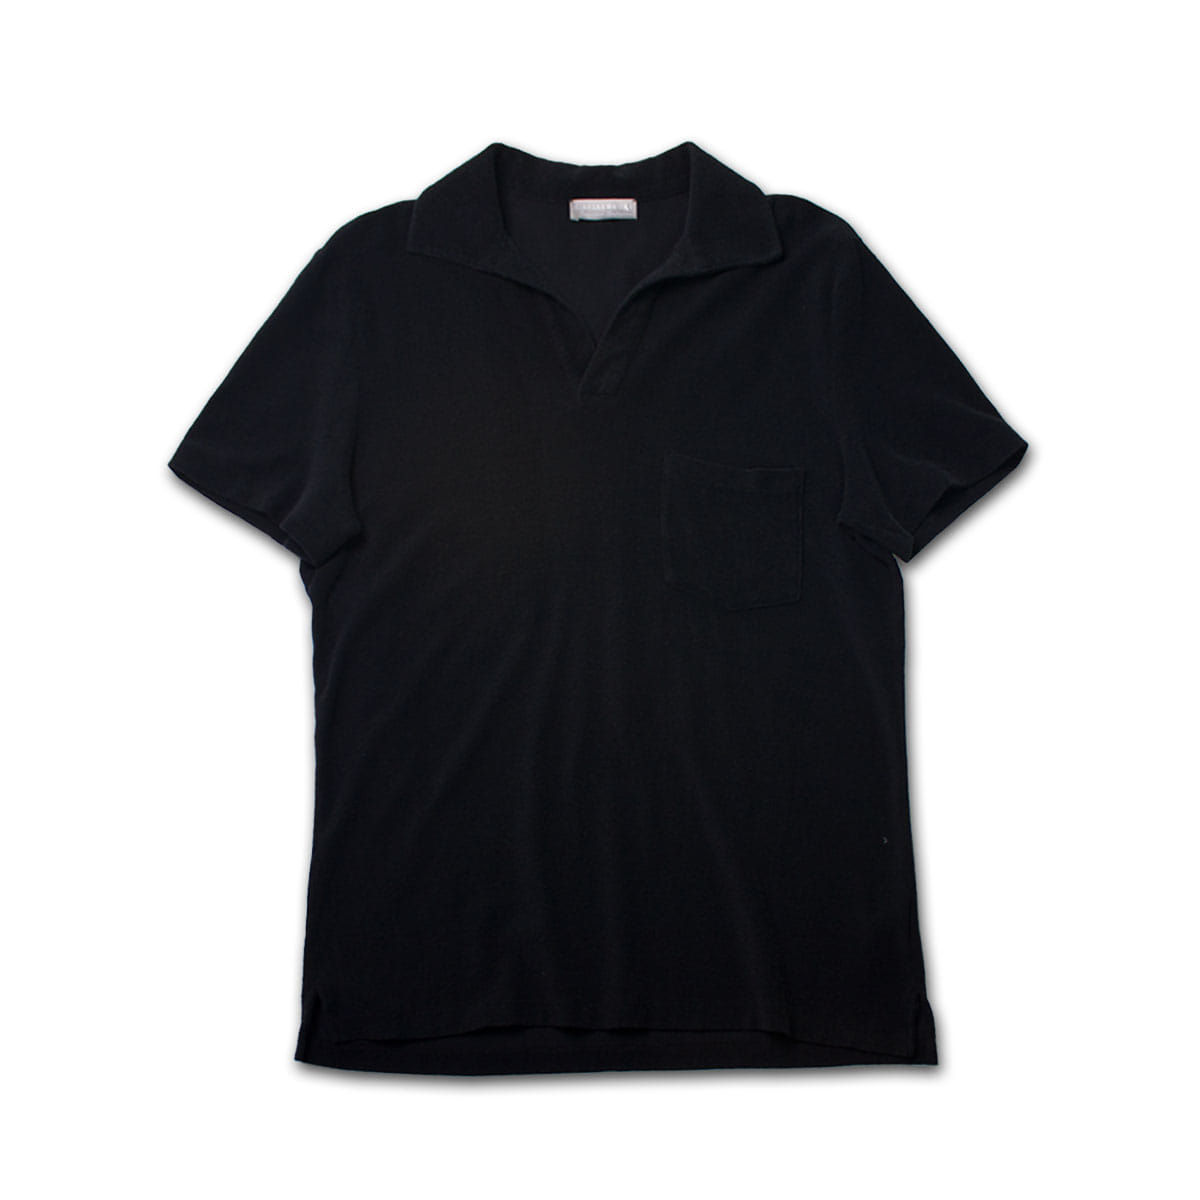 [GIRELLI BRUNI] OPEN COLLAR POLO SHIRT 'BALCK'